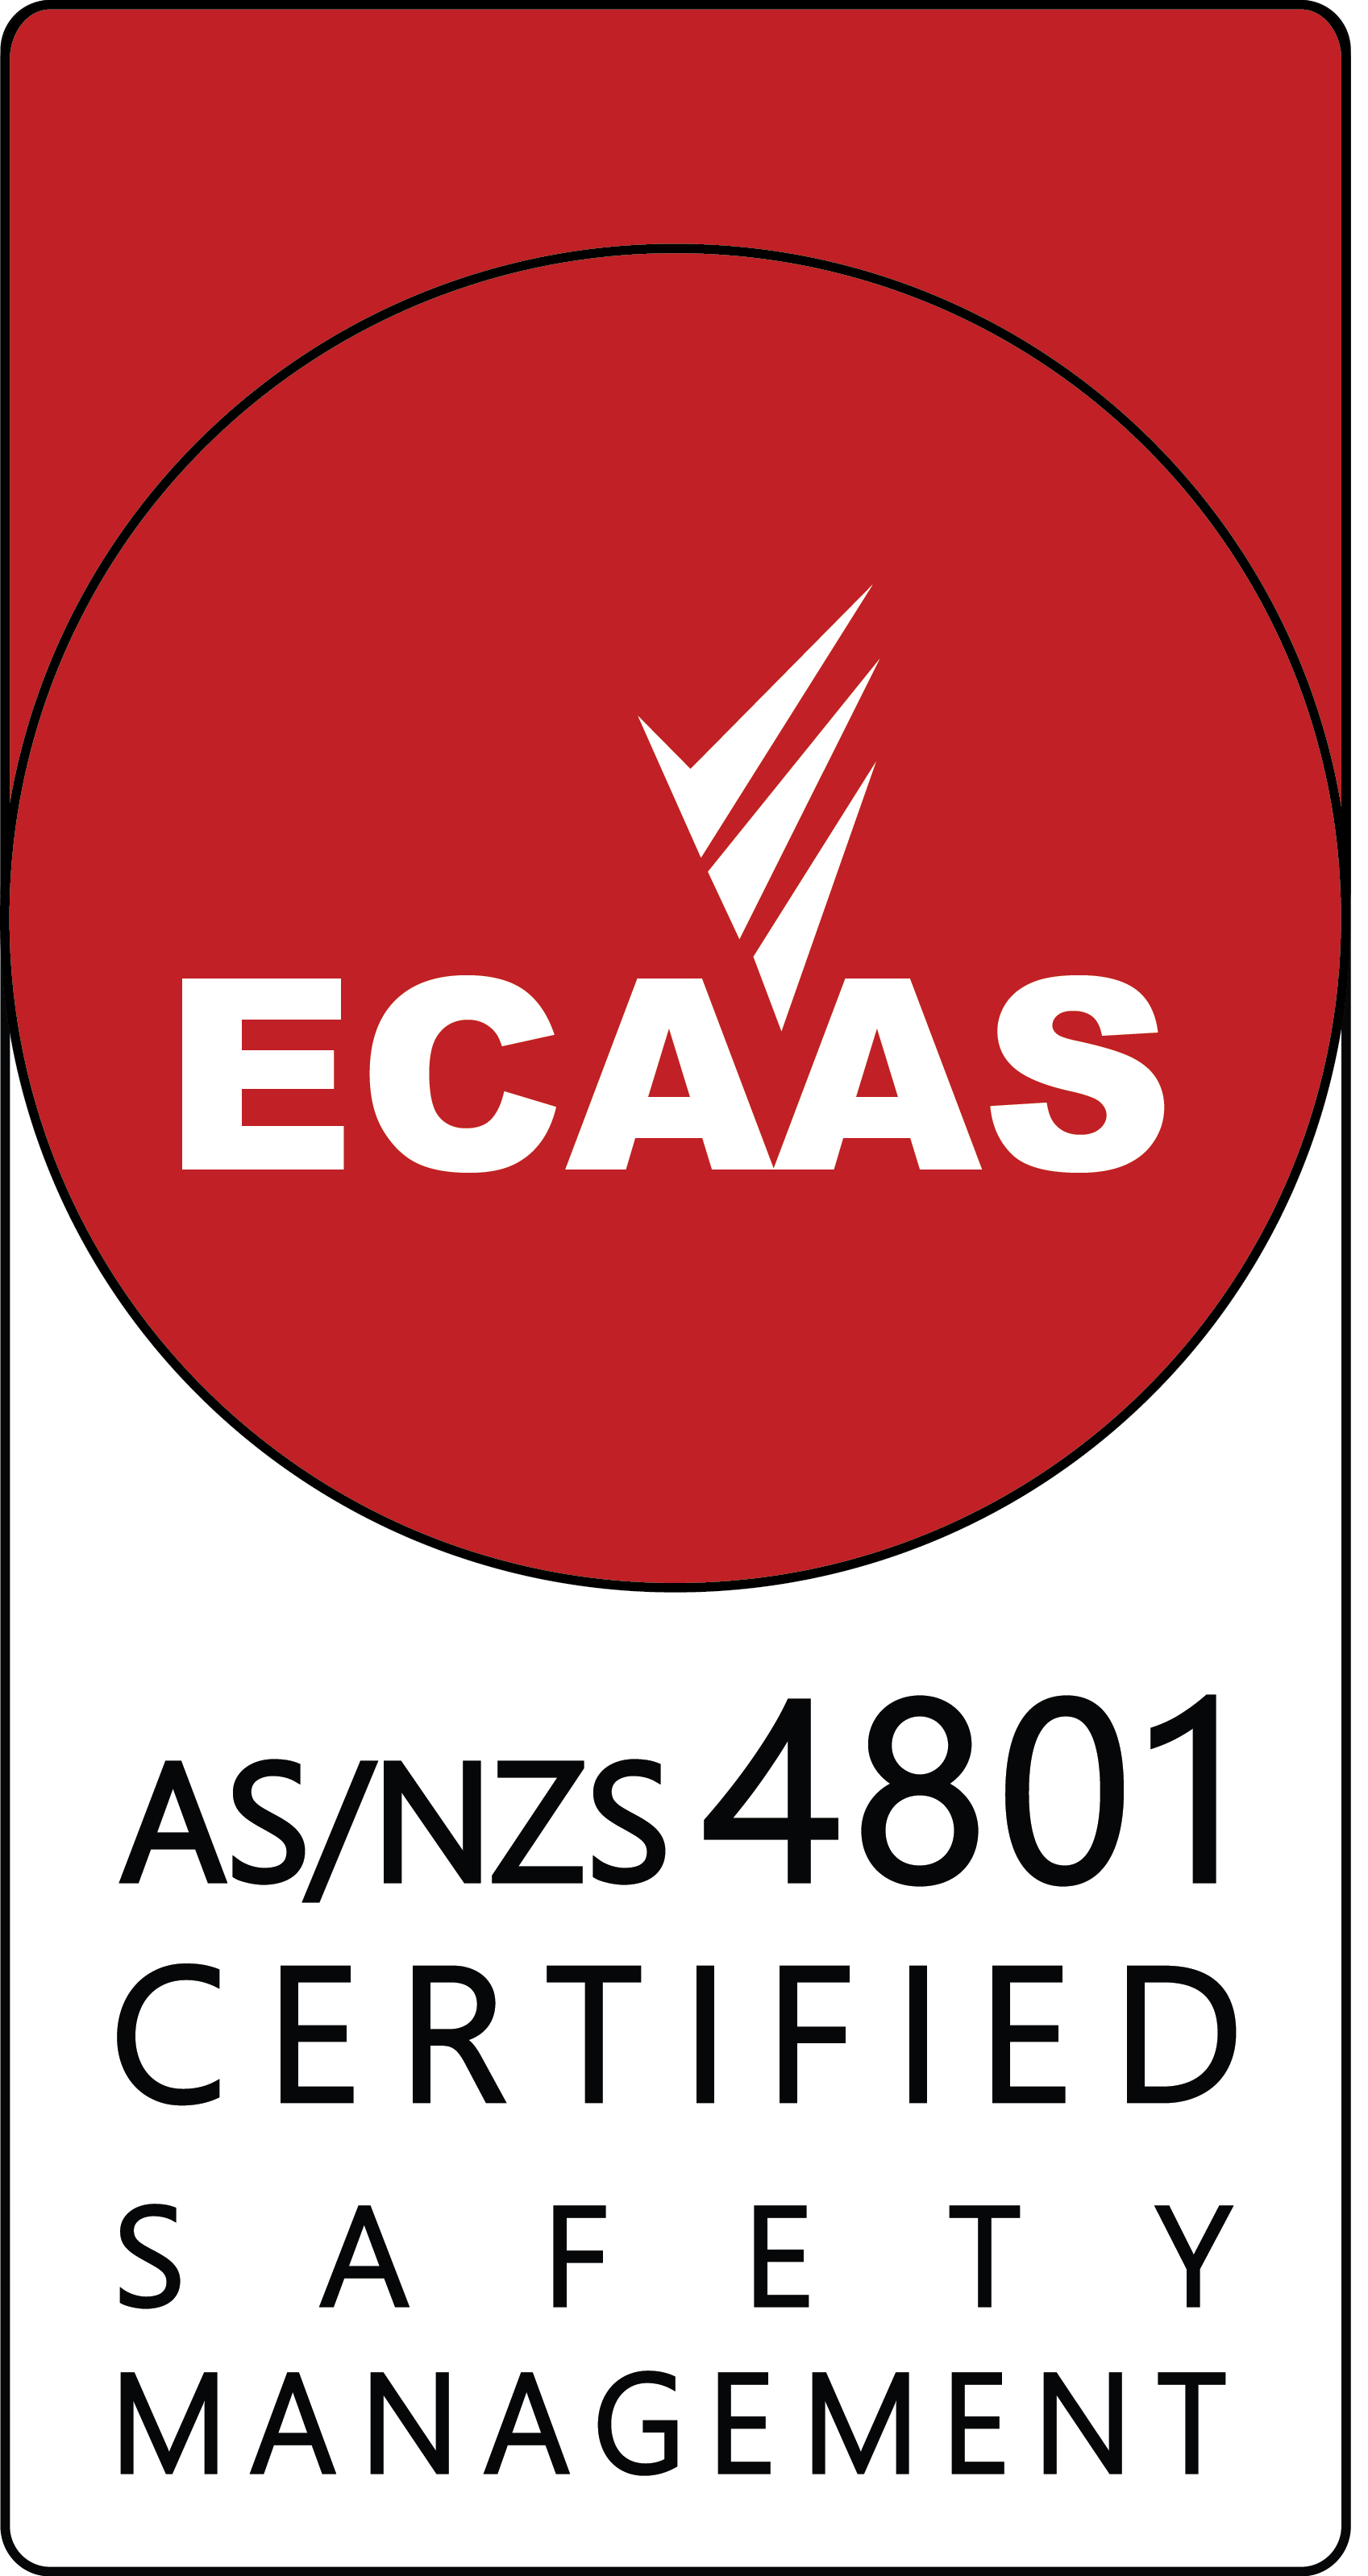 ECAAS Certification Mark - 4801 v1.1 300ppi